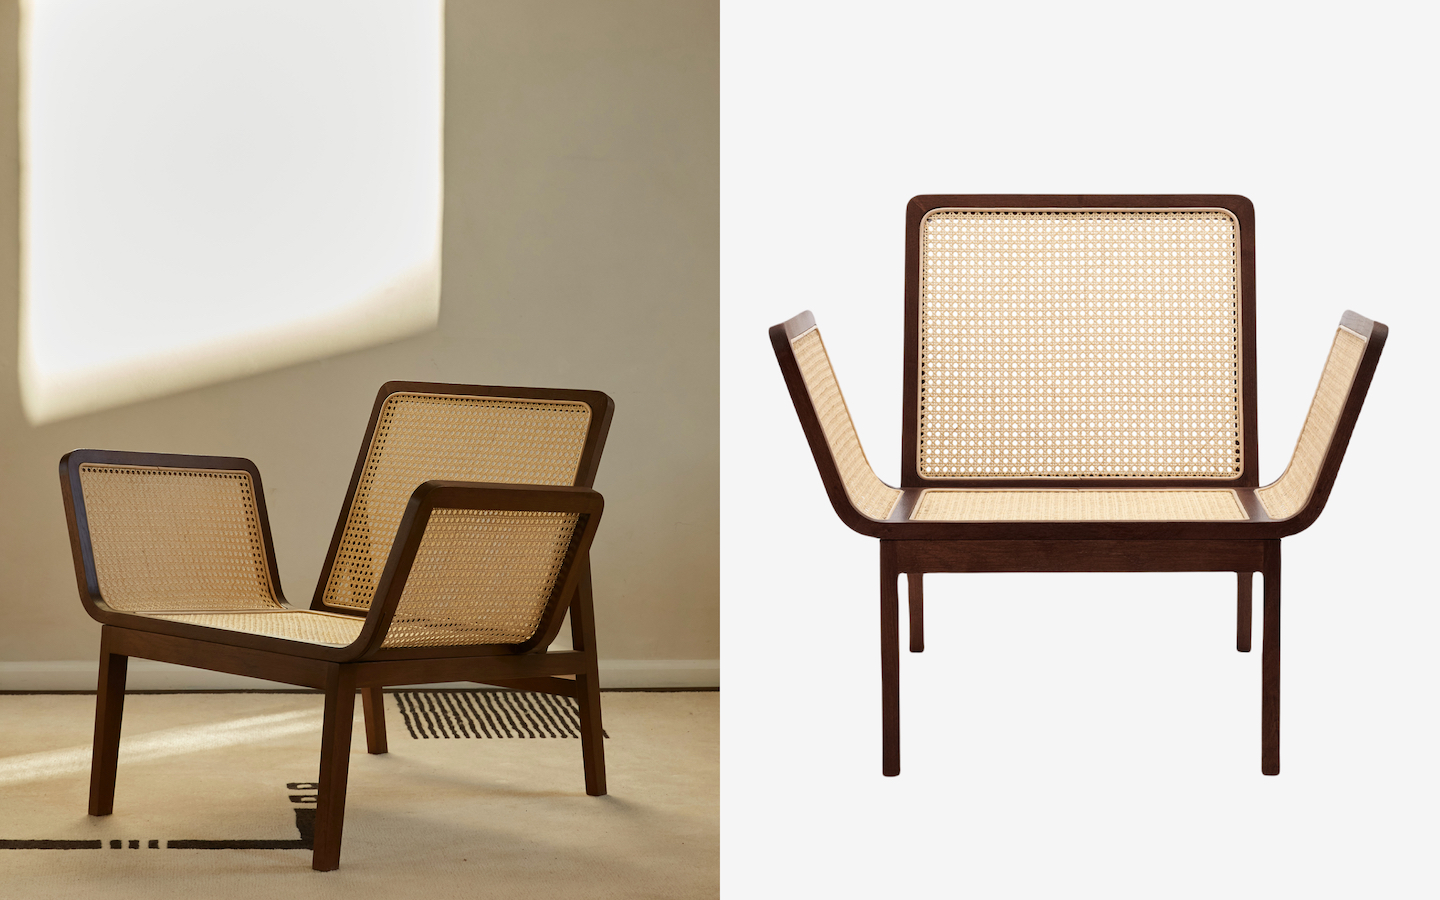 Rattan chair with wing-like seat and armrests